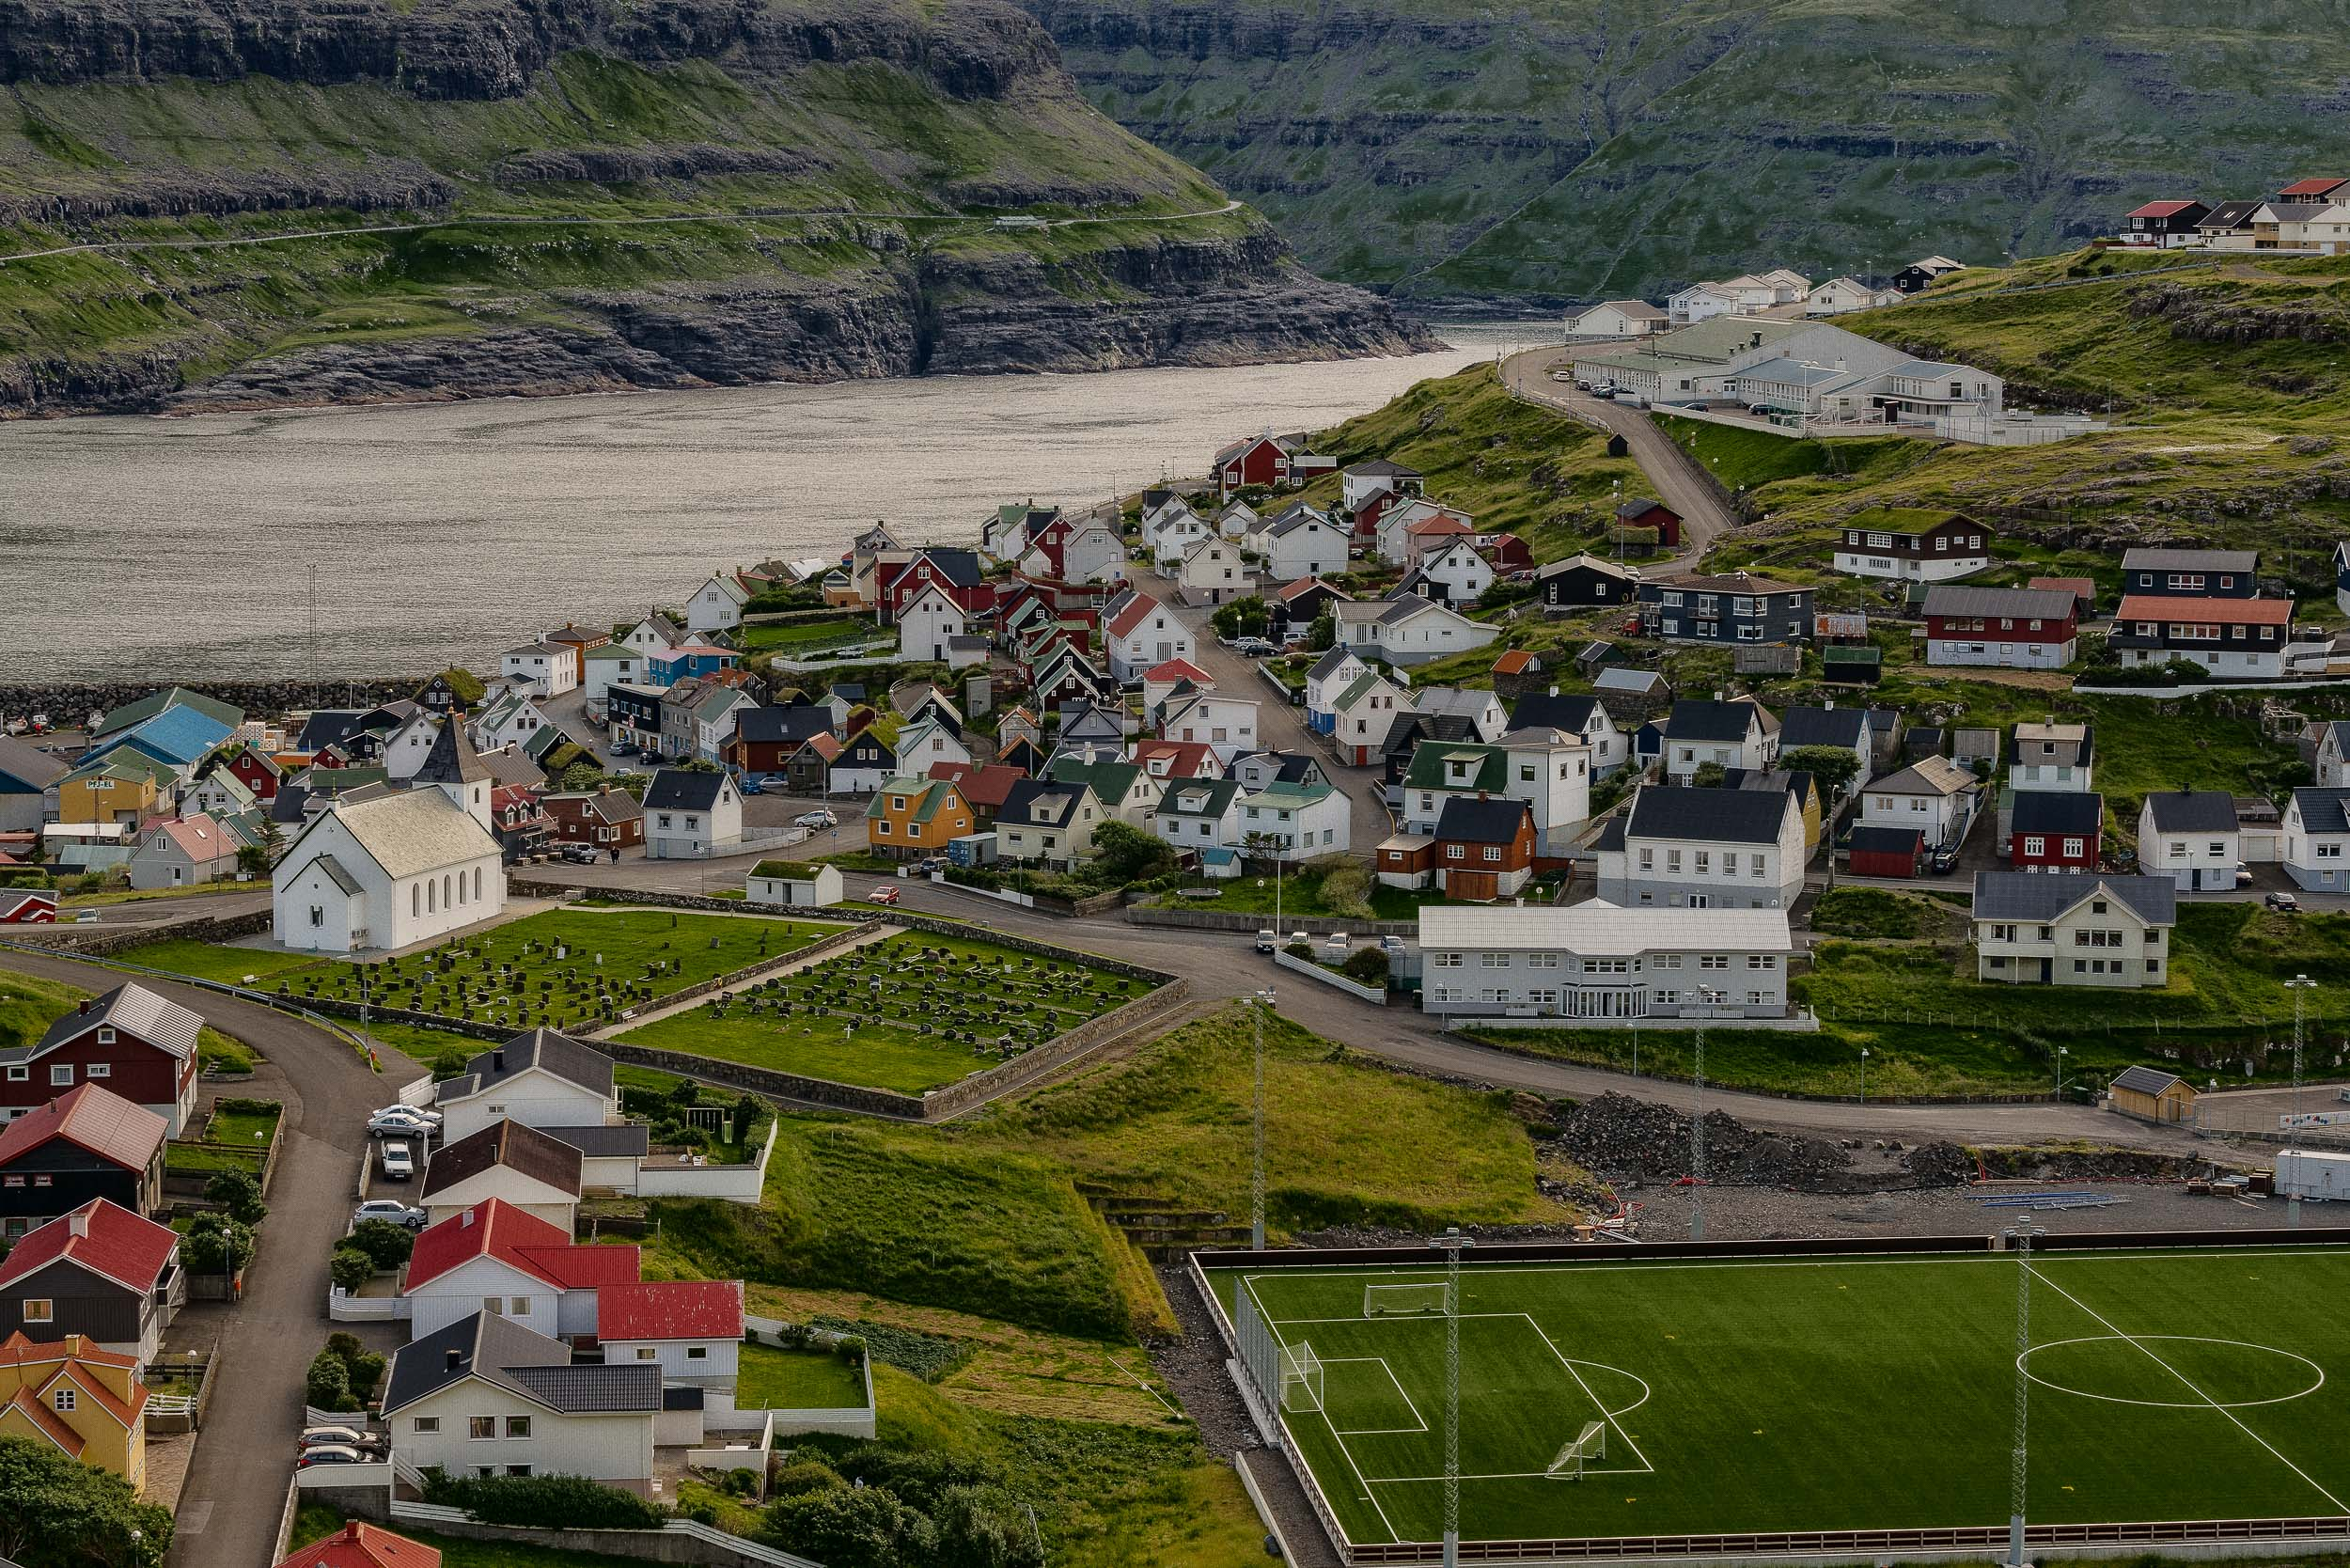 Looking down onto the    picturesque village of Eidi at dusk    on the island of    Eysturoy    in the    Faroe Islands   .